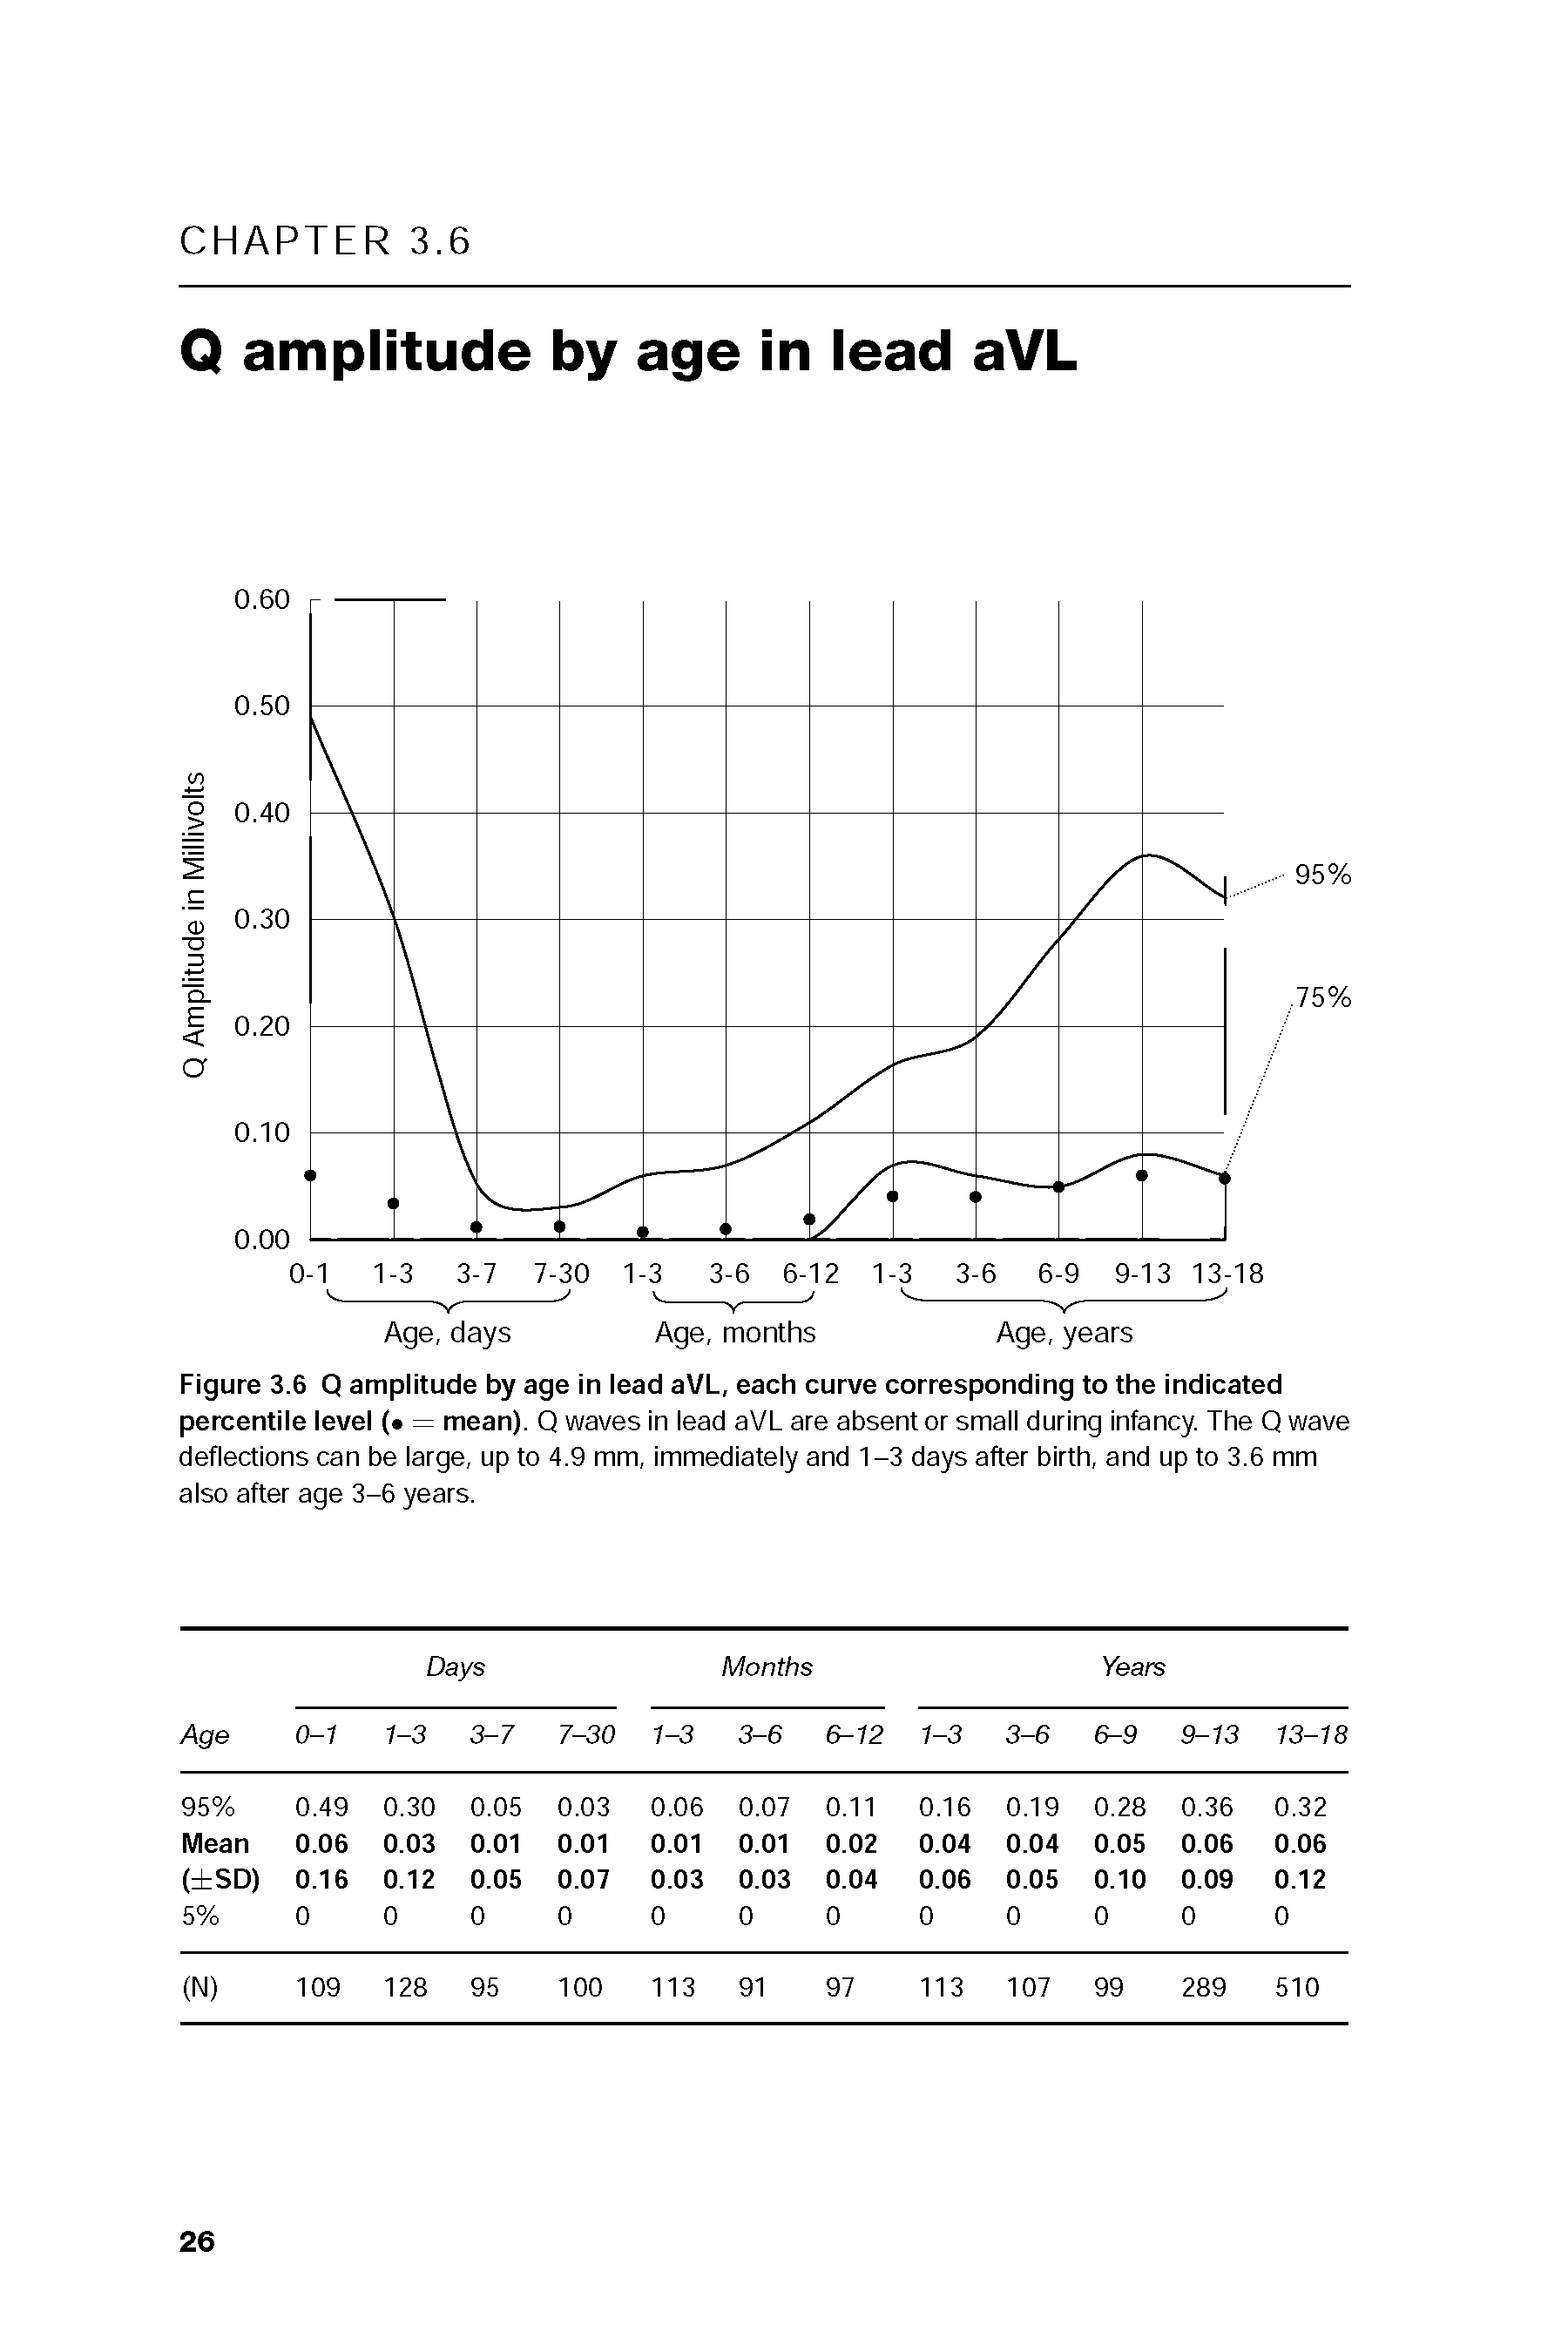 Figure 3.6 Q amplitude by age in lead aVL, each curve corresponding to the indicated percentile level ( = mean). Q waves in lead aVL are absent or small during Infancy. The Q wave deflections can be large, up to 4.9 mm. Immediately and 1-3 days after birth, and up to 3.6 mm also after age 3-6 years.